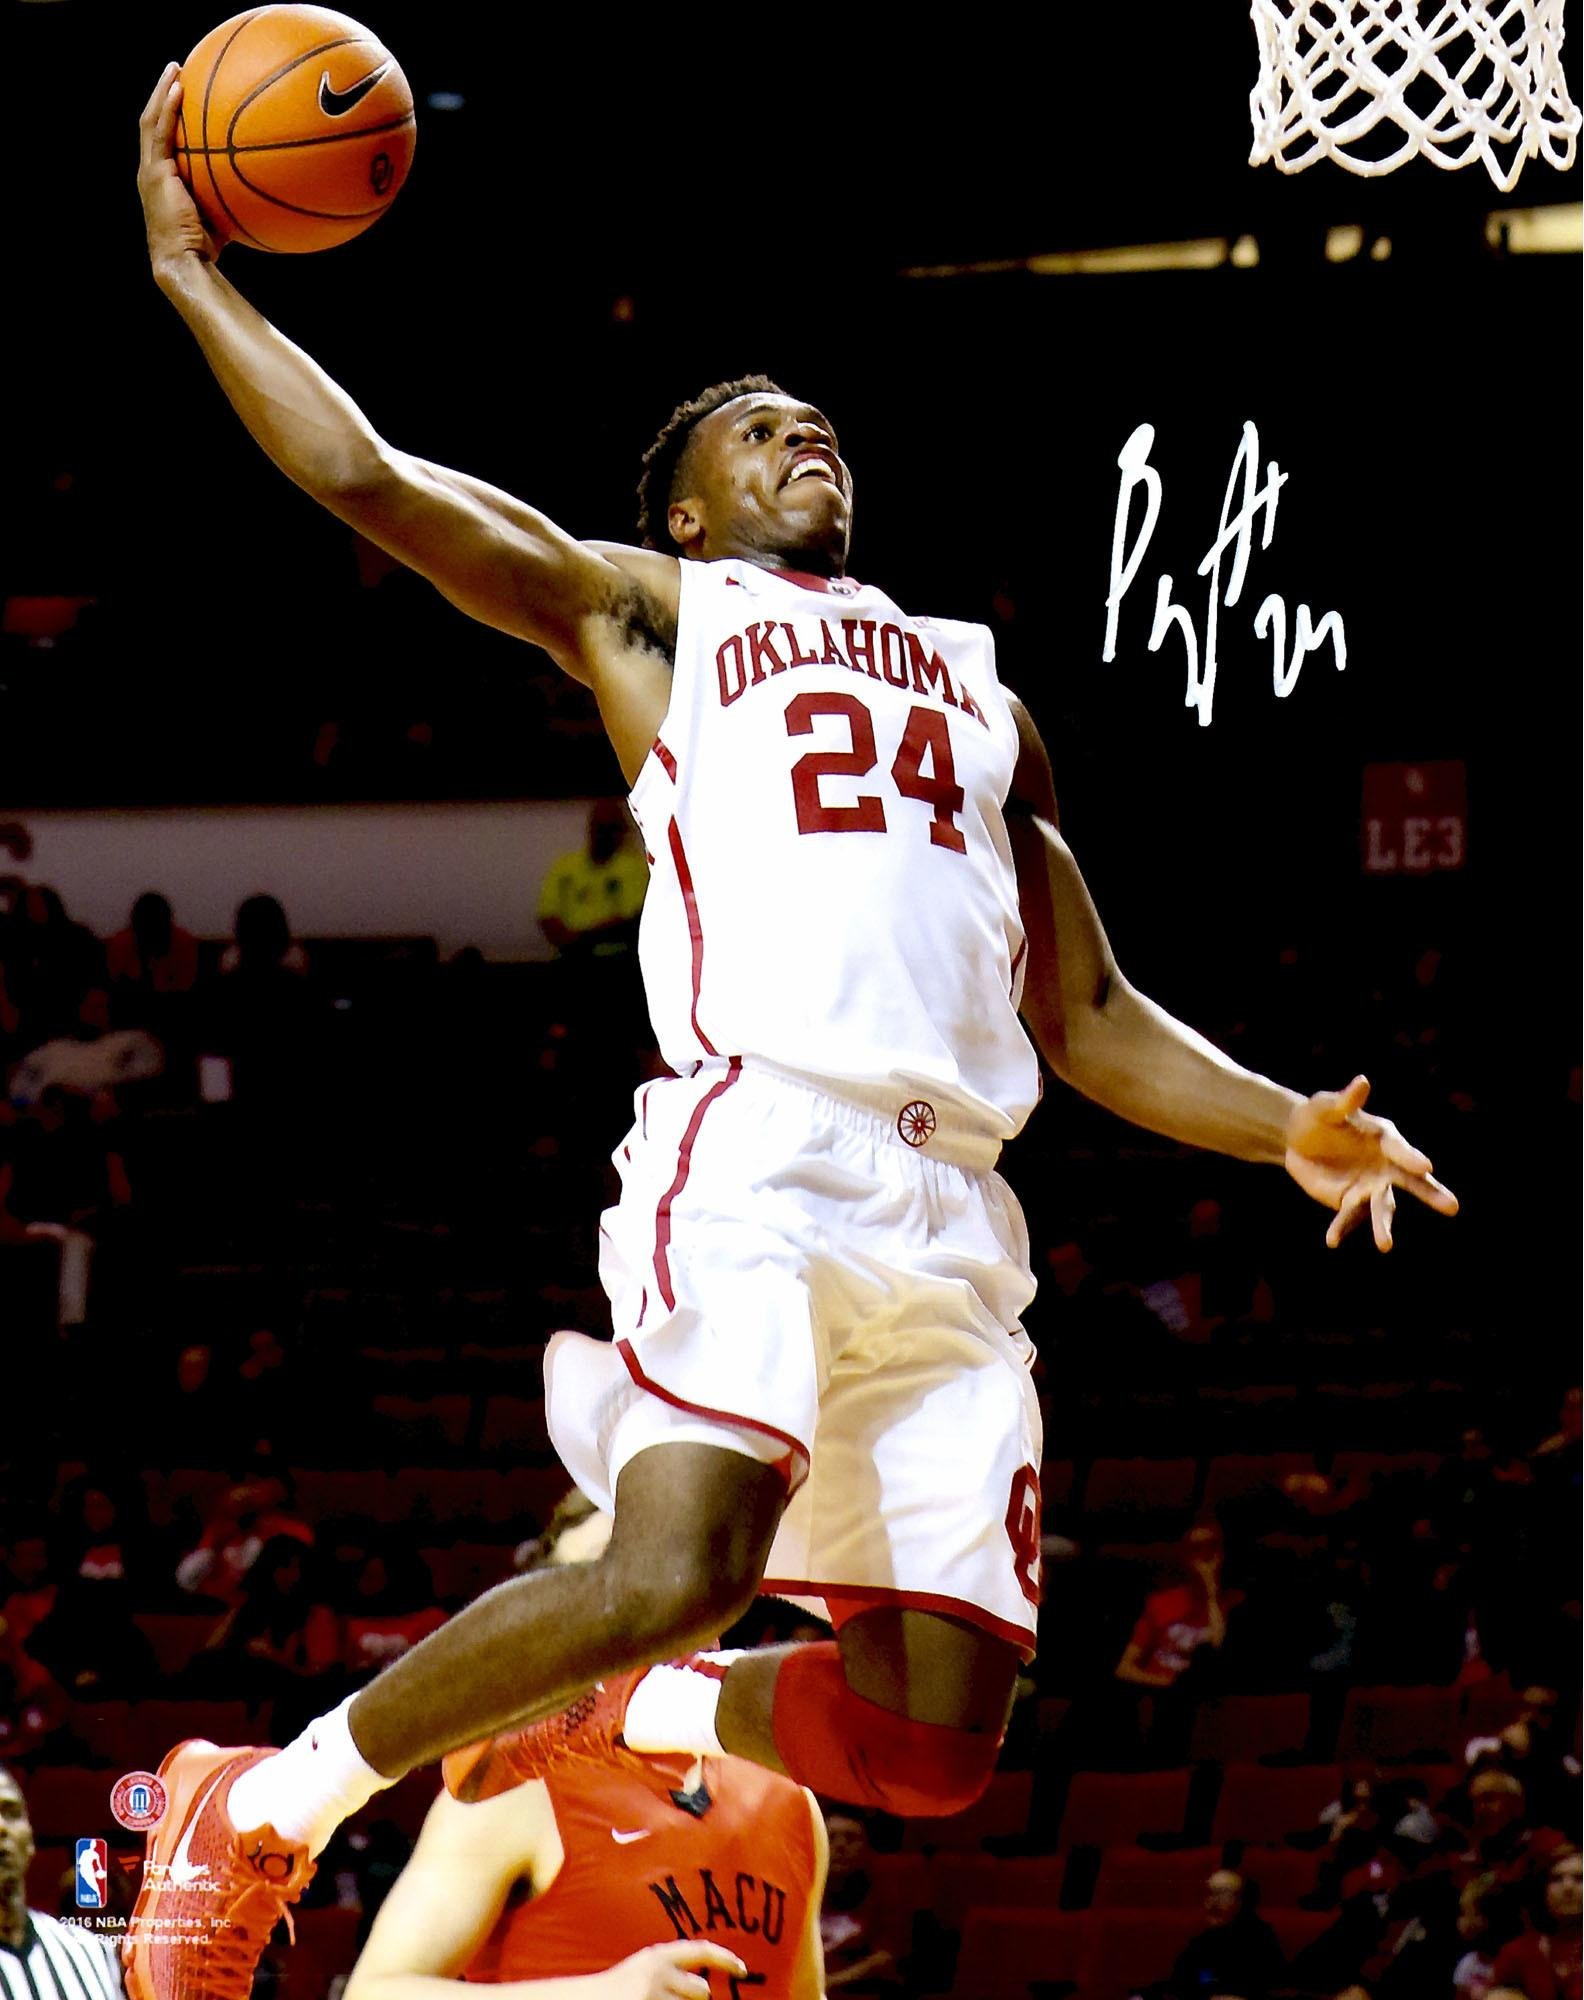 "Buddy Hield Oklahoma Sooners Autographed 8"" x 10"" Dunking Photograph Fanatics Authentic Certified Autographed College Photos"